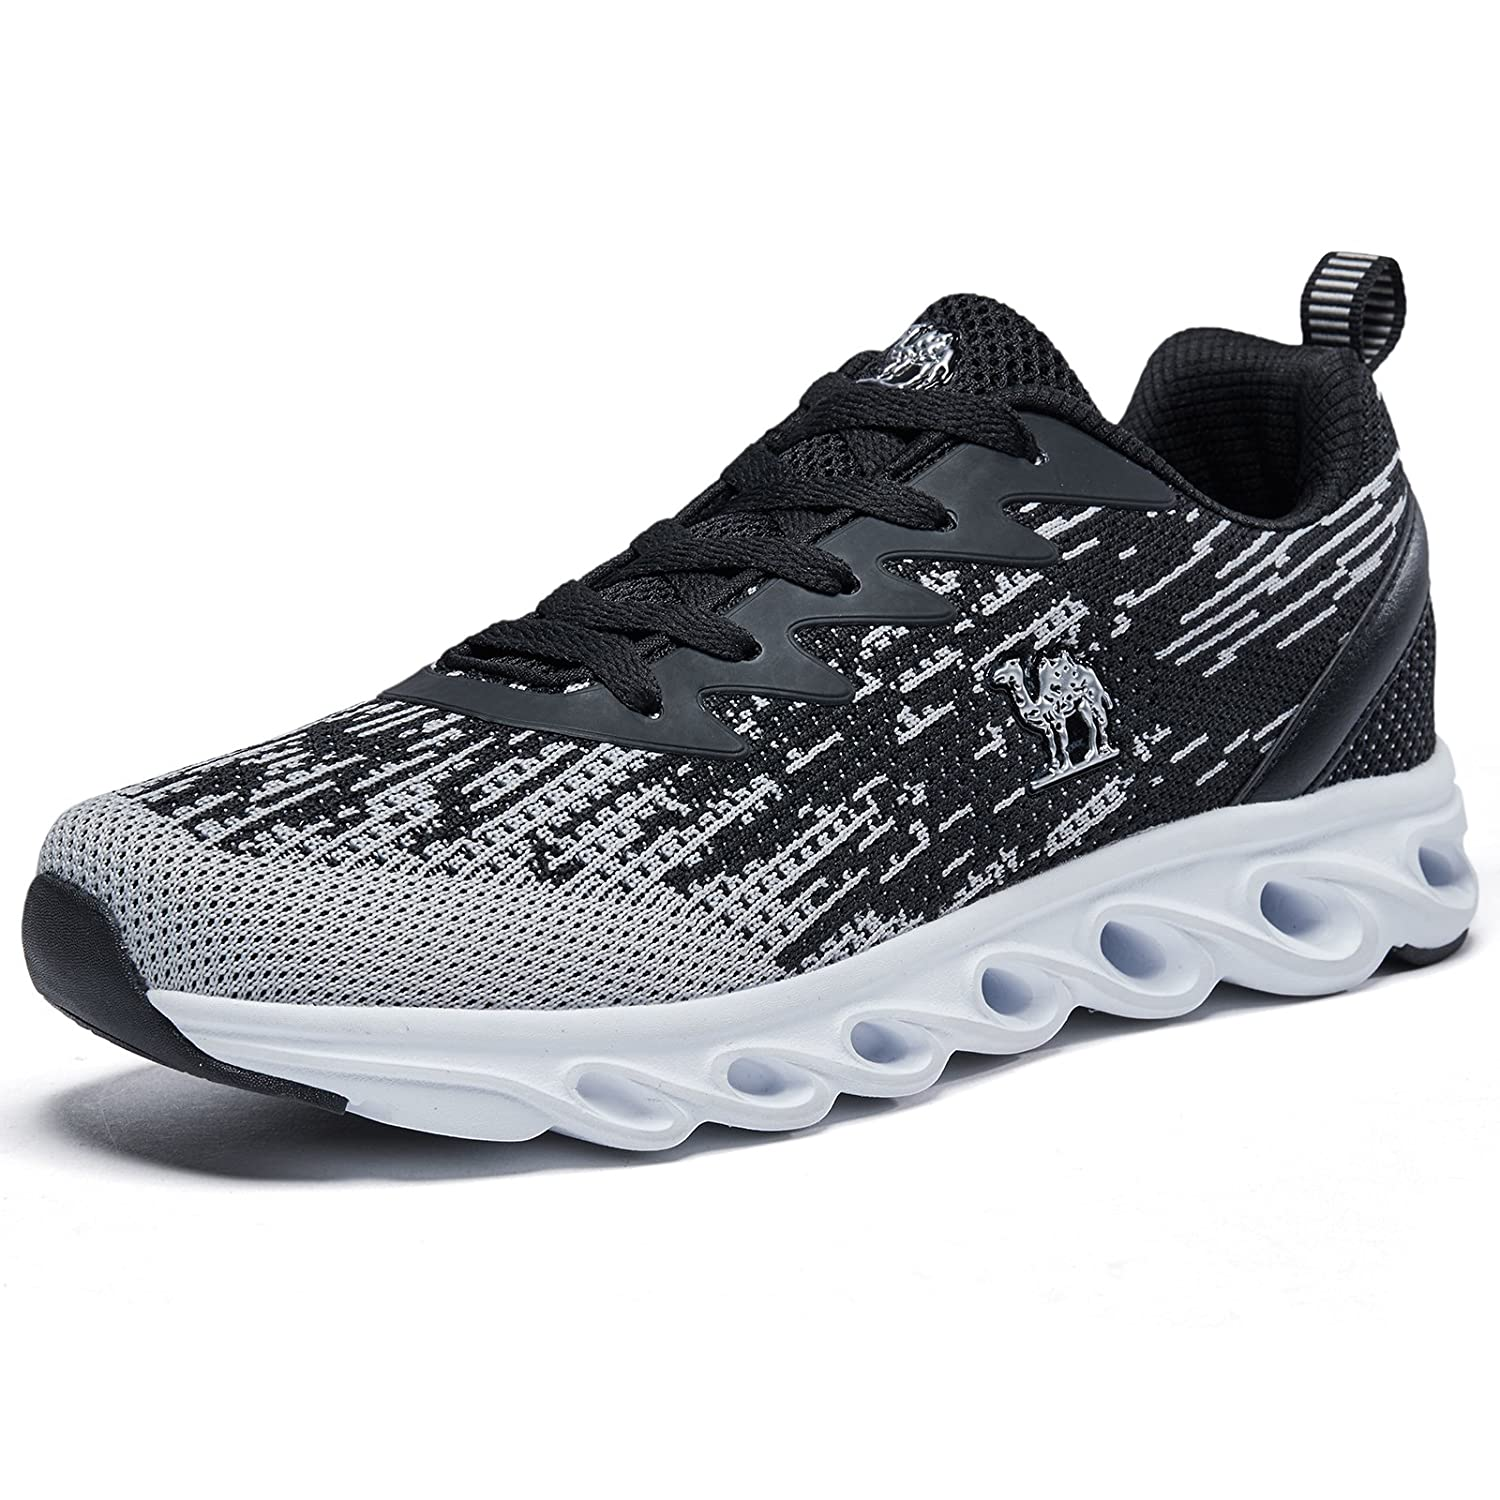 Camel Men's Trail Running Shoes Lightweight Breathable Athletic Sneakers for Sport Gym B07CLJJTN5 10.5 US-27CM Gray